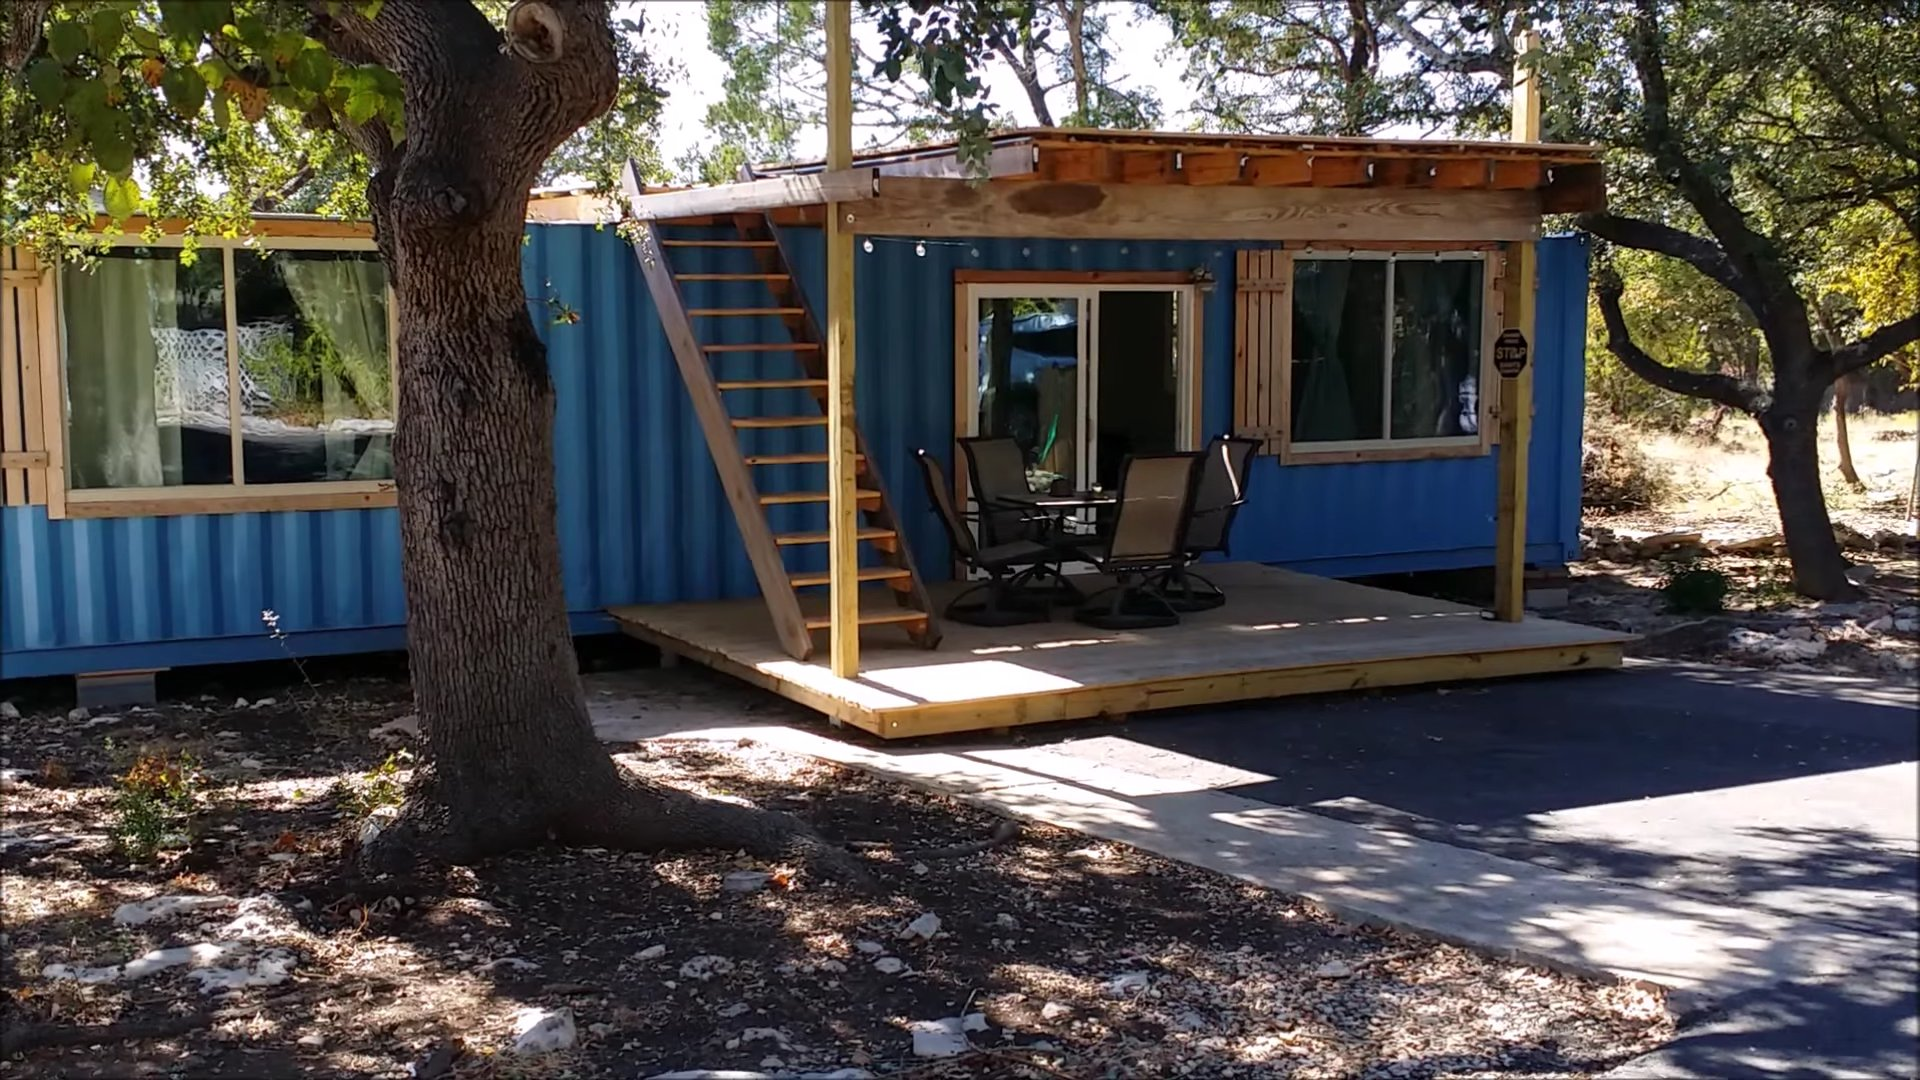 40u0027x8u0027 Shipping Container Tiny Home Built